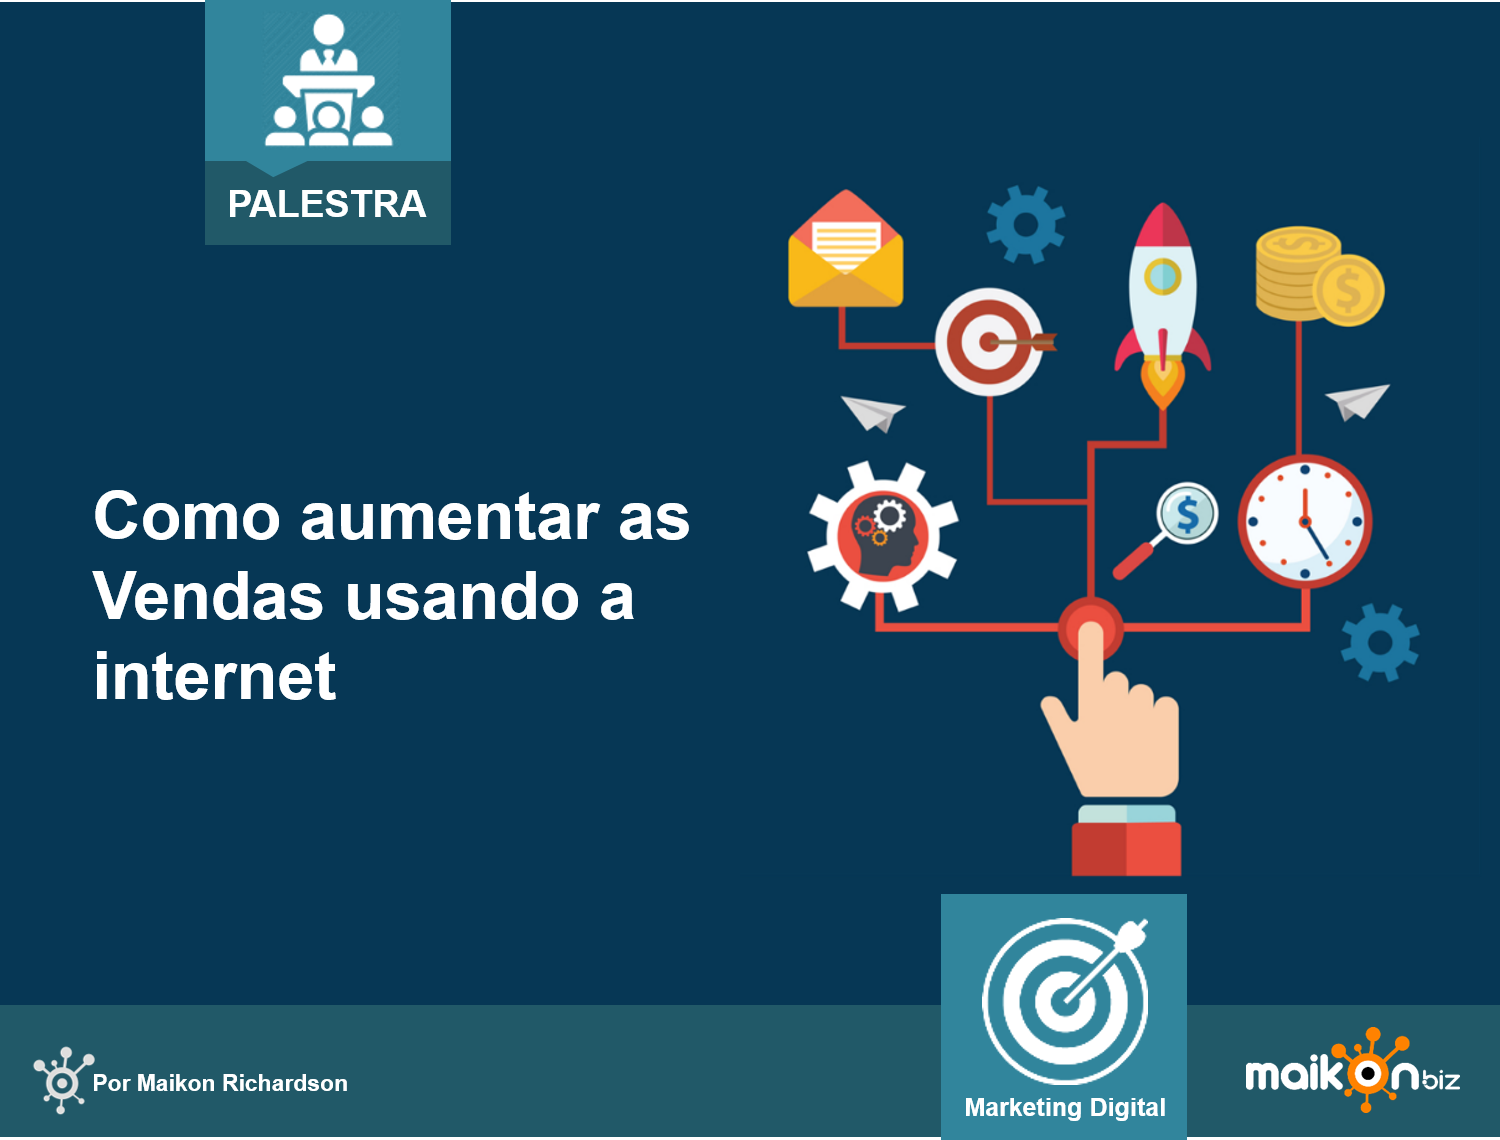 Como aumentar as Vendas usando a internet